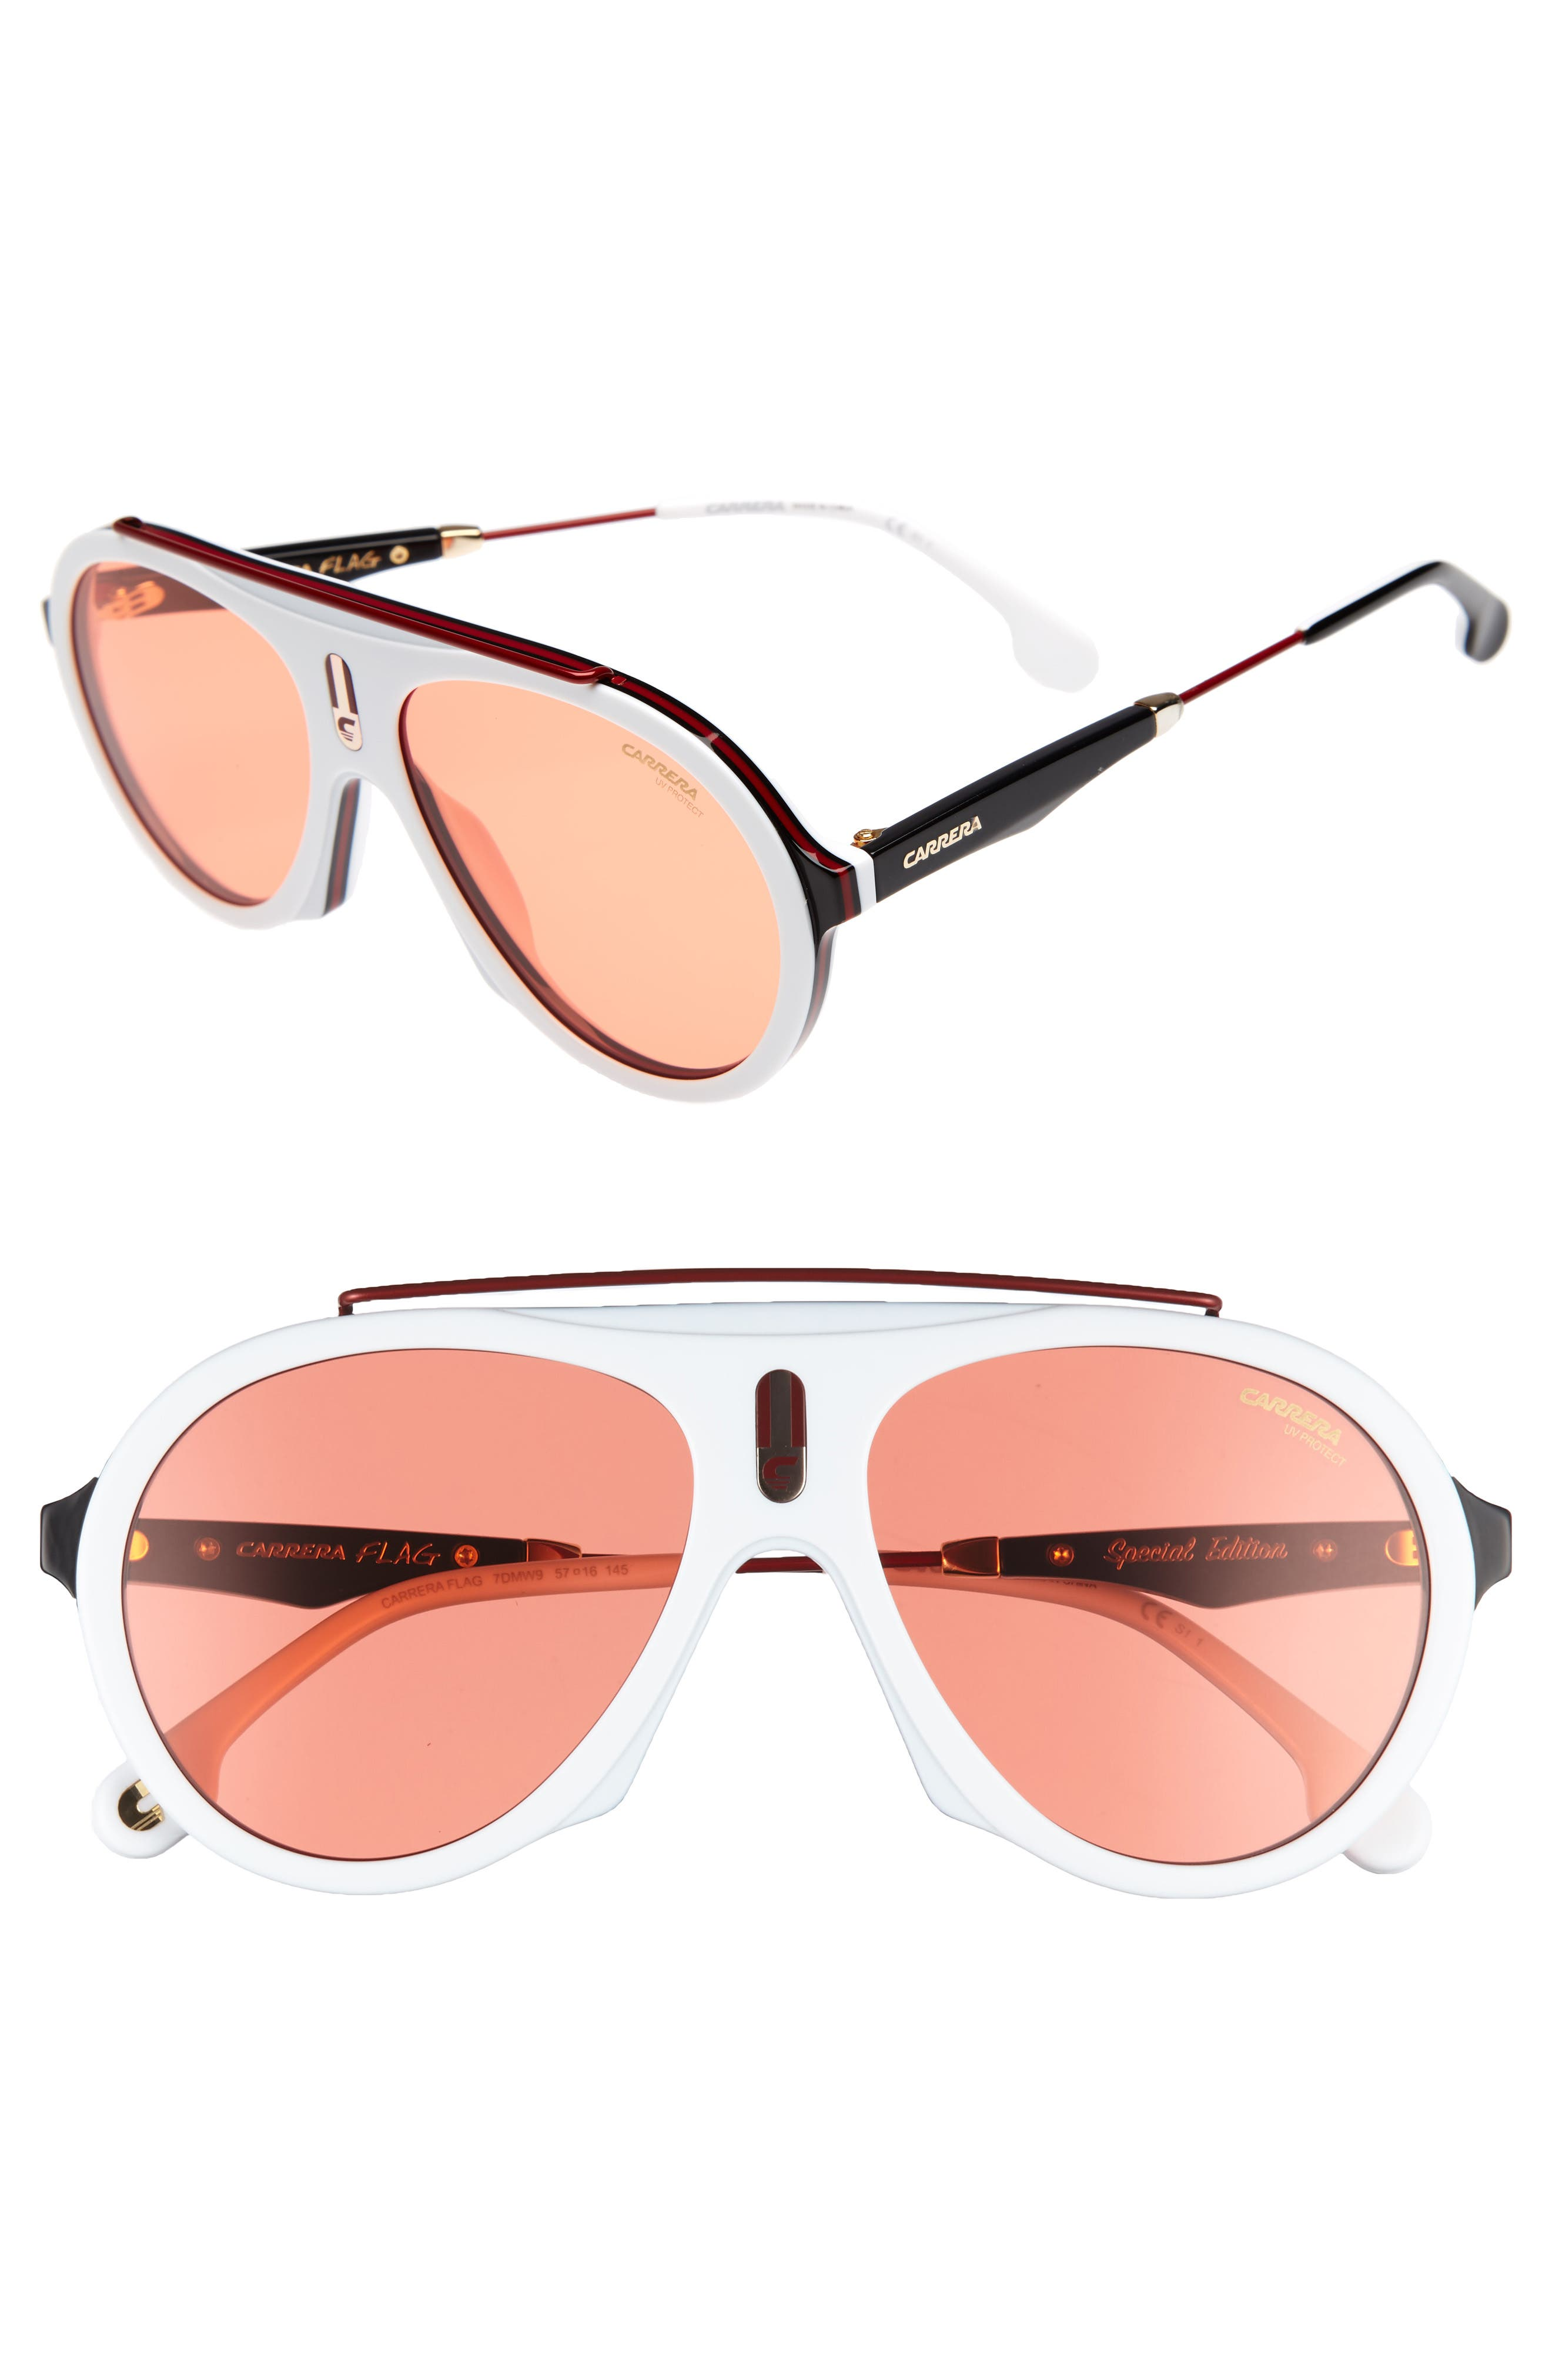 Carrera Flag 57mm Mirrored Pilot Sunglasses,                             Main thumbnail 1, color,                             White/ Red